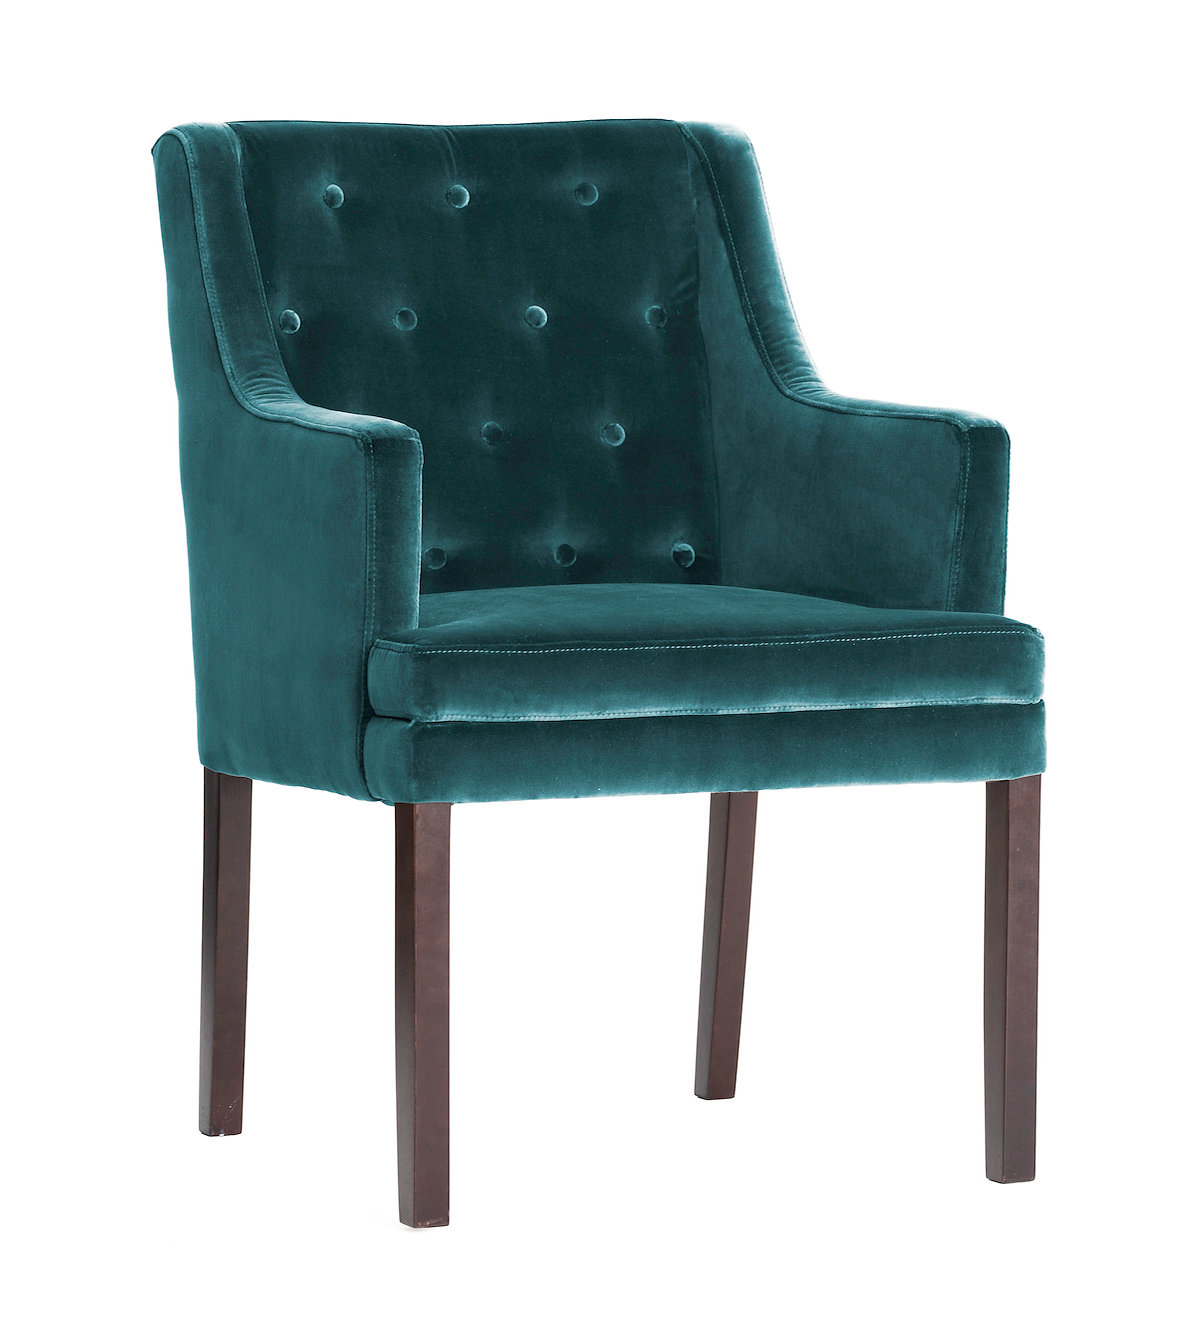 Pretentious Inspiration Teal Lounge Chair Joshua and Tammy